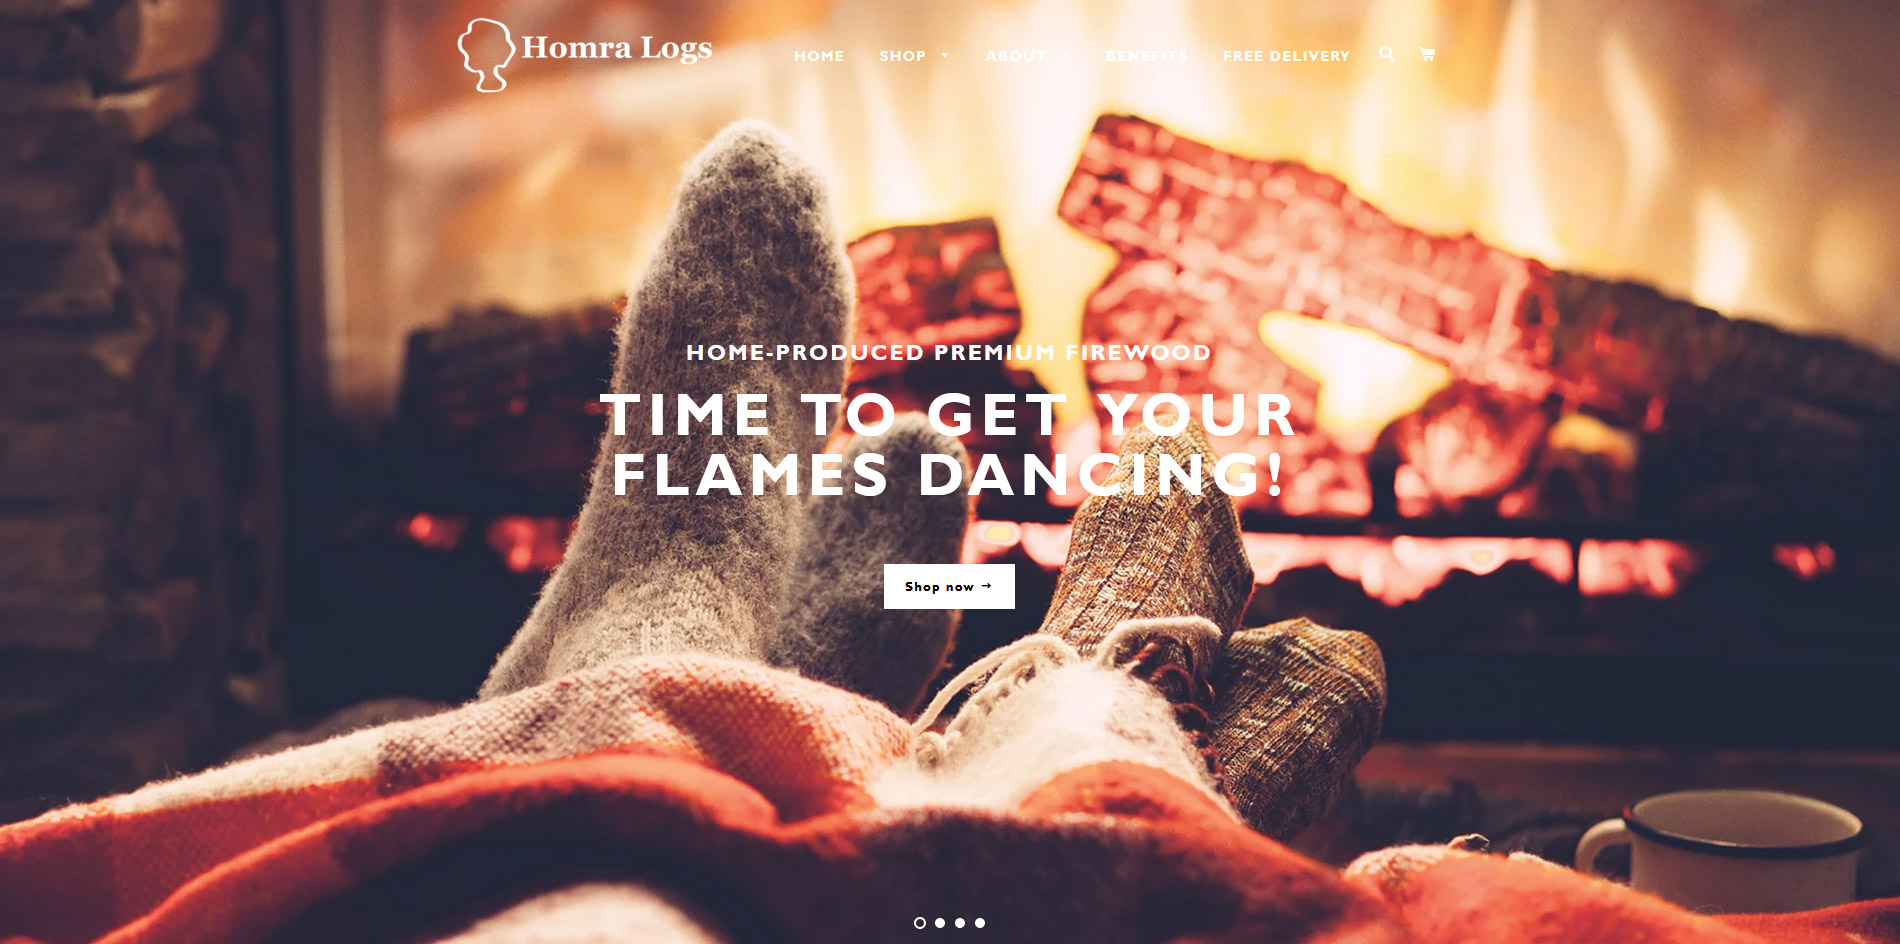 Homra Logs Website